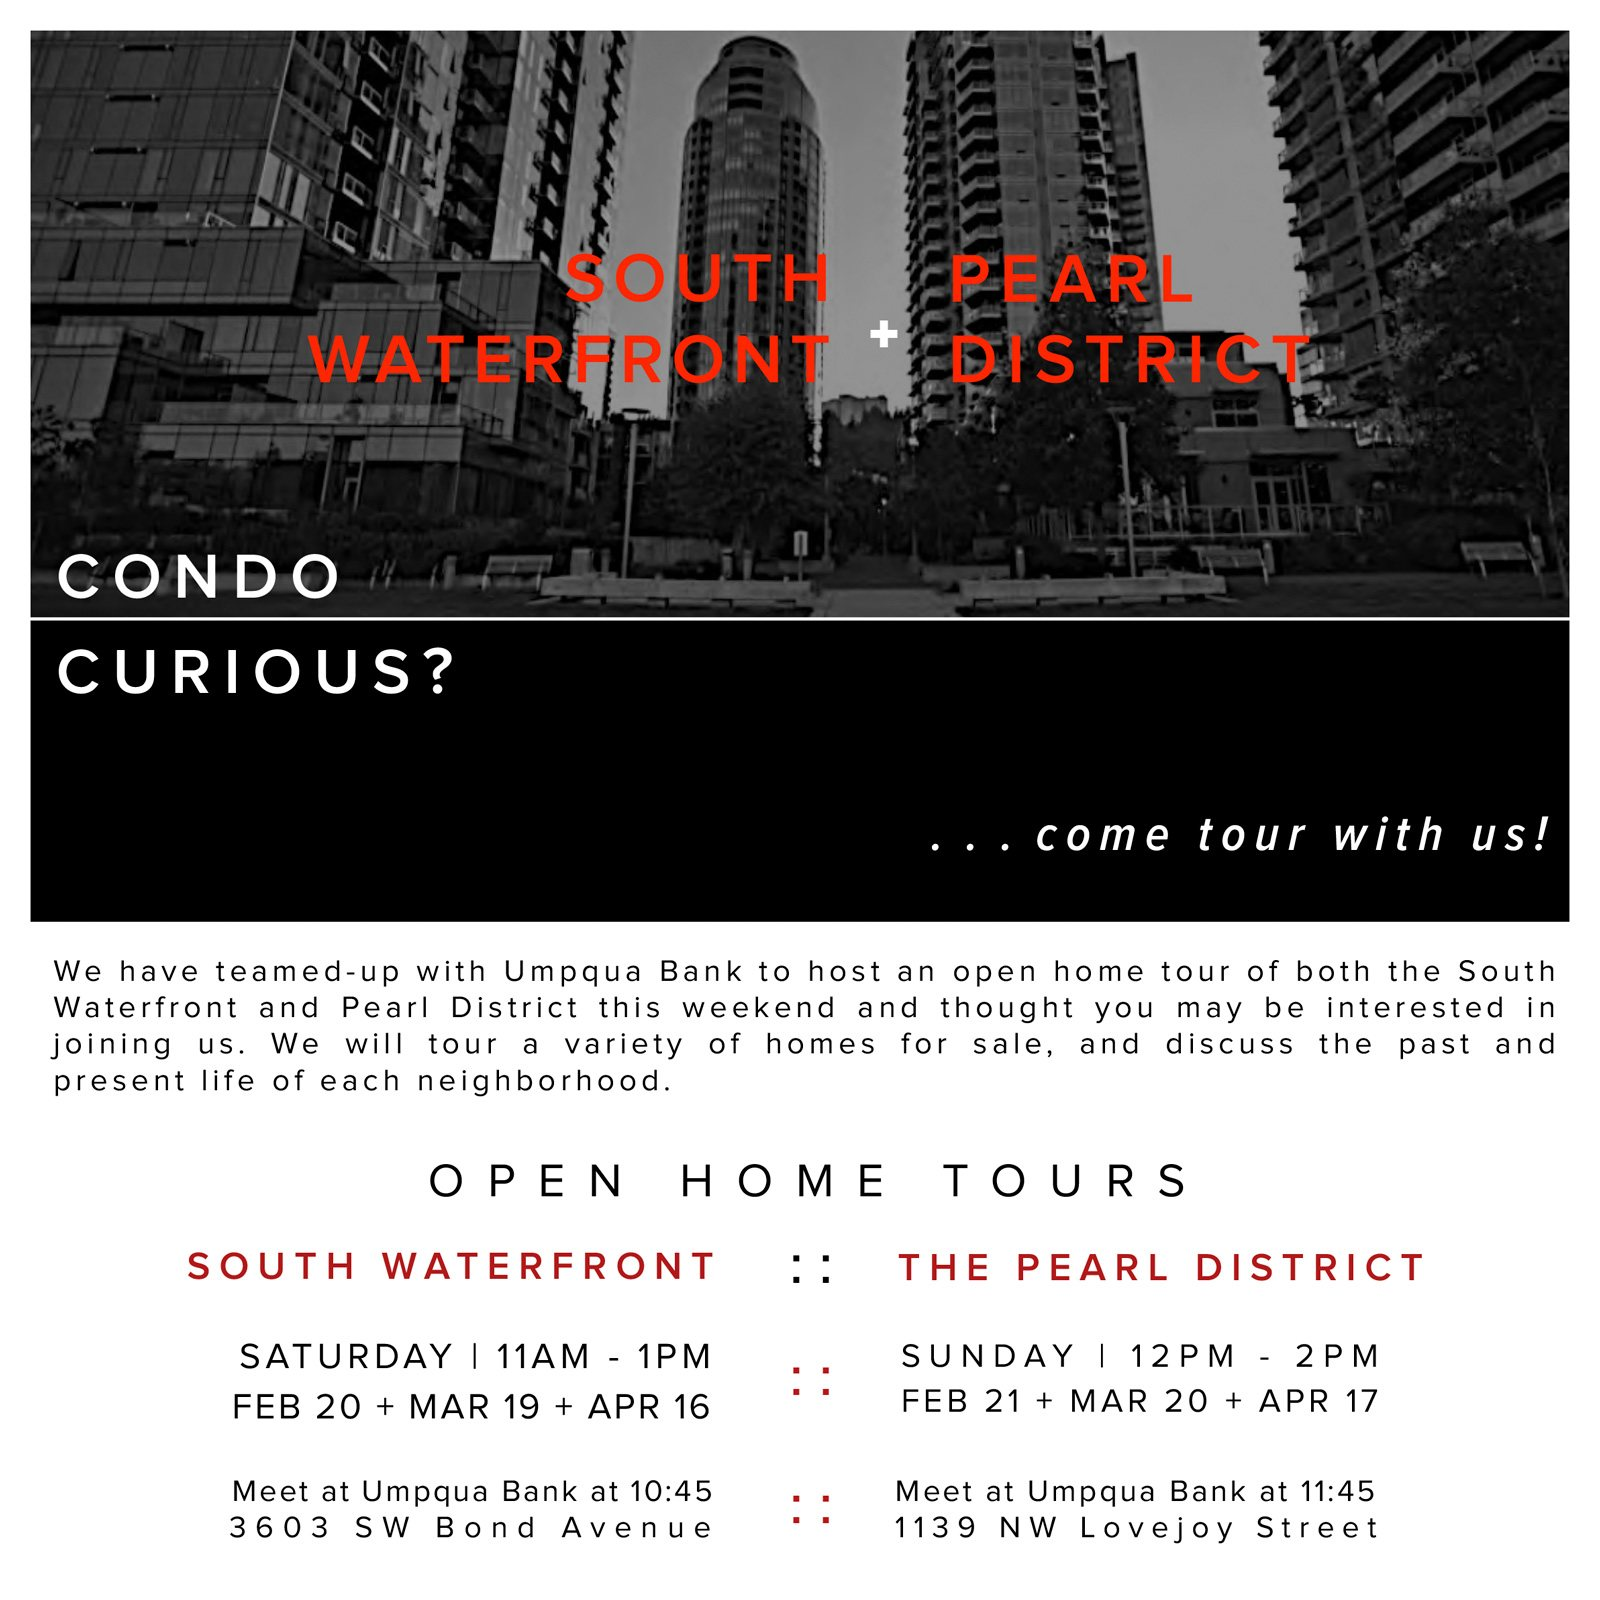 home tours feb - apr